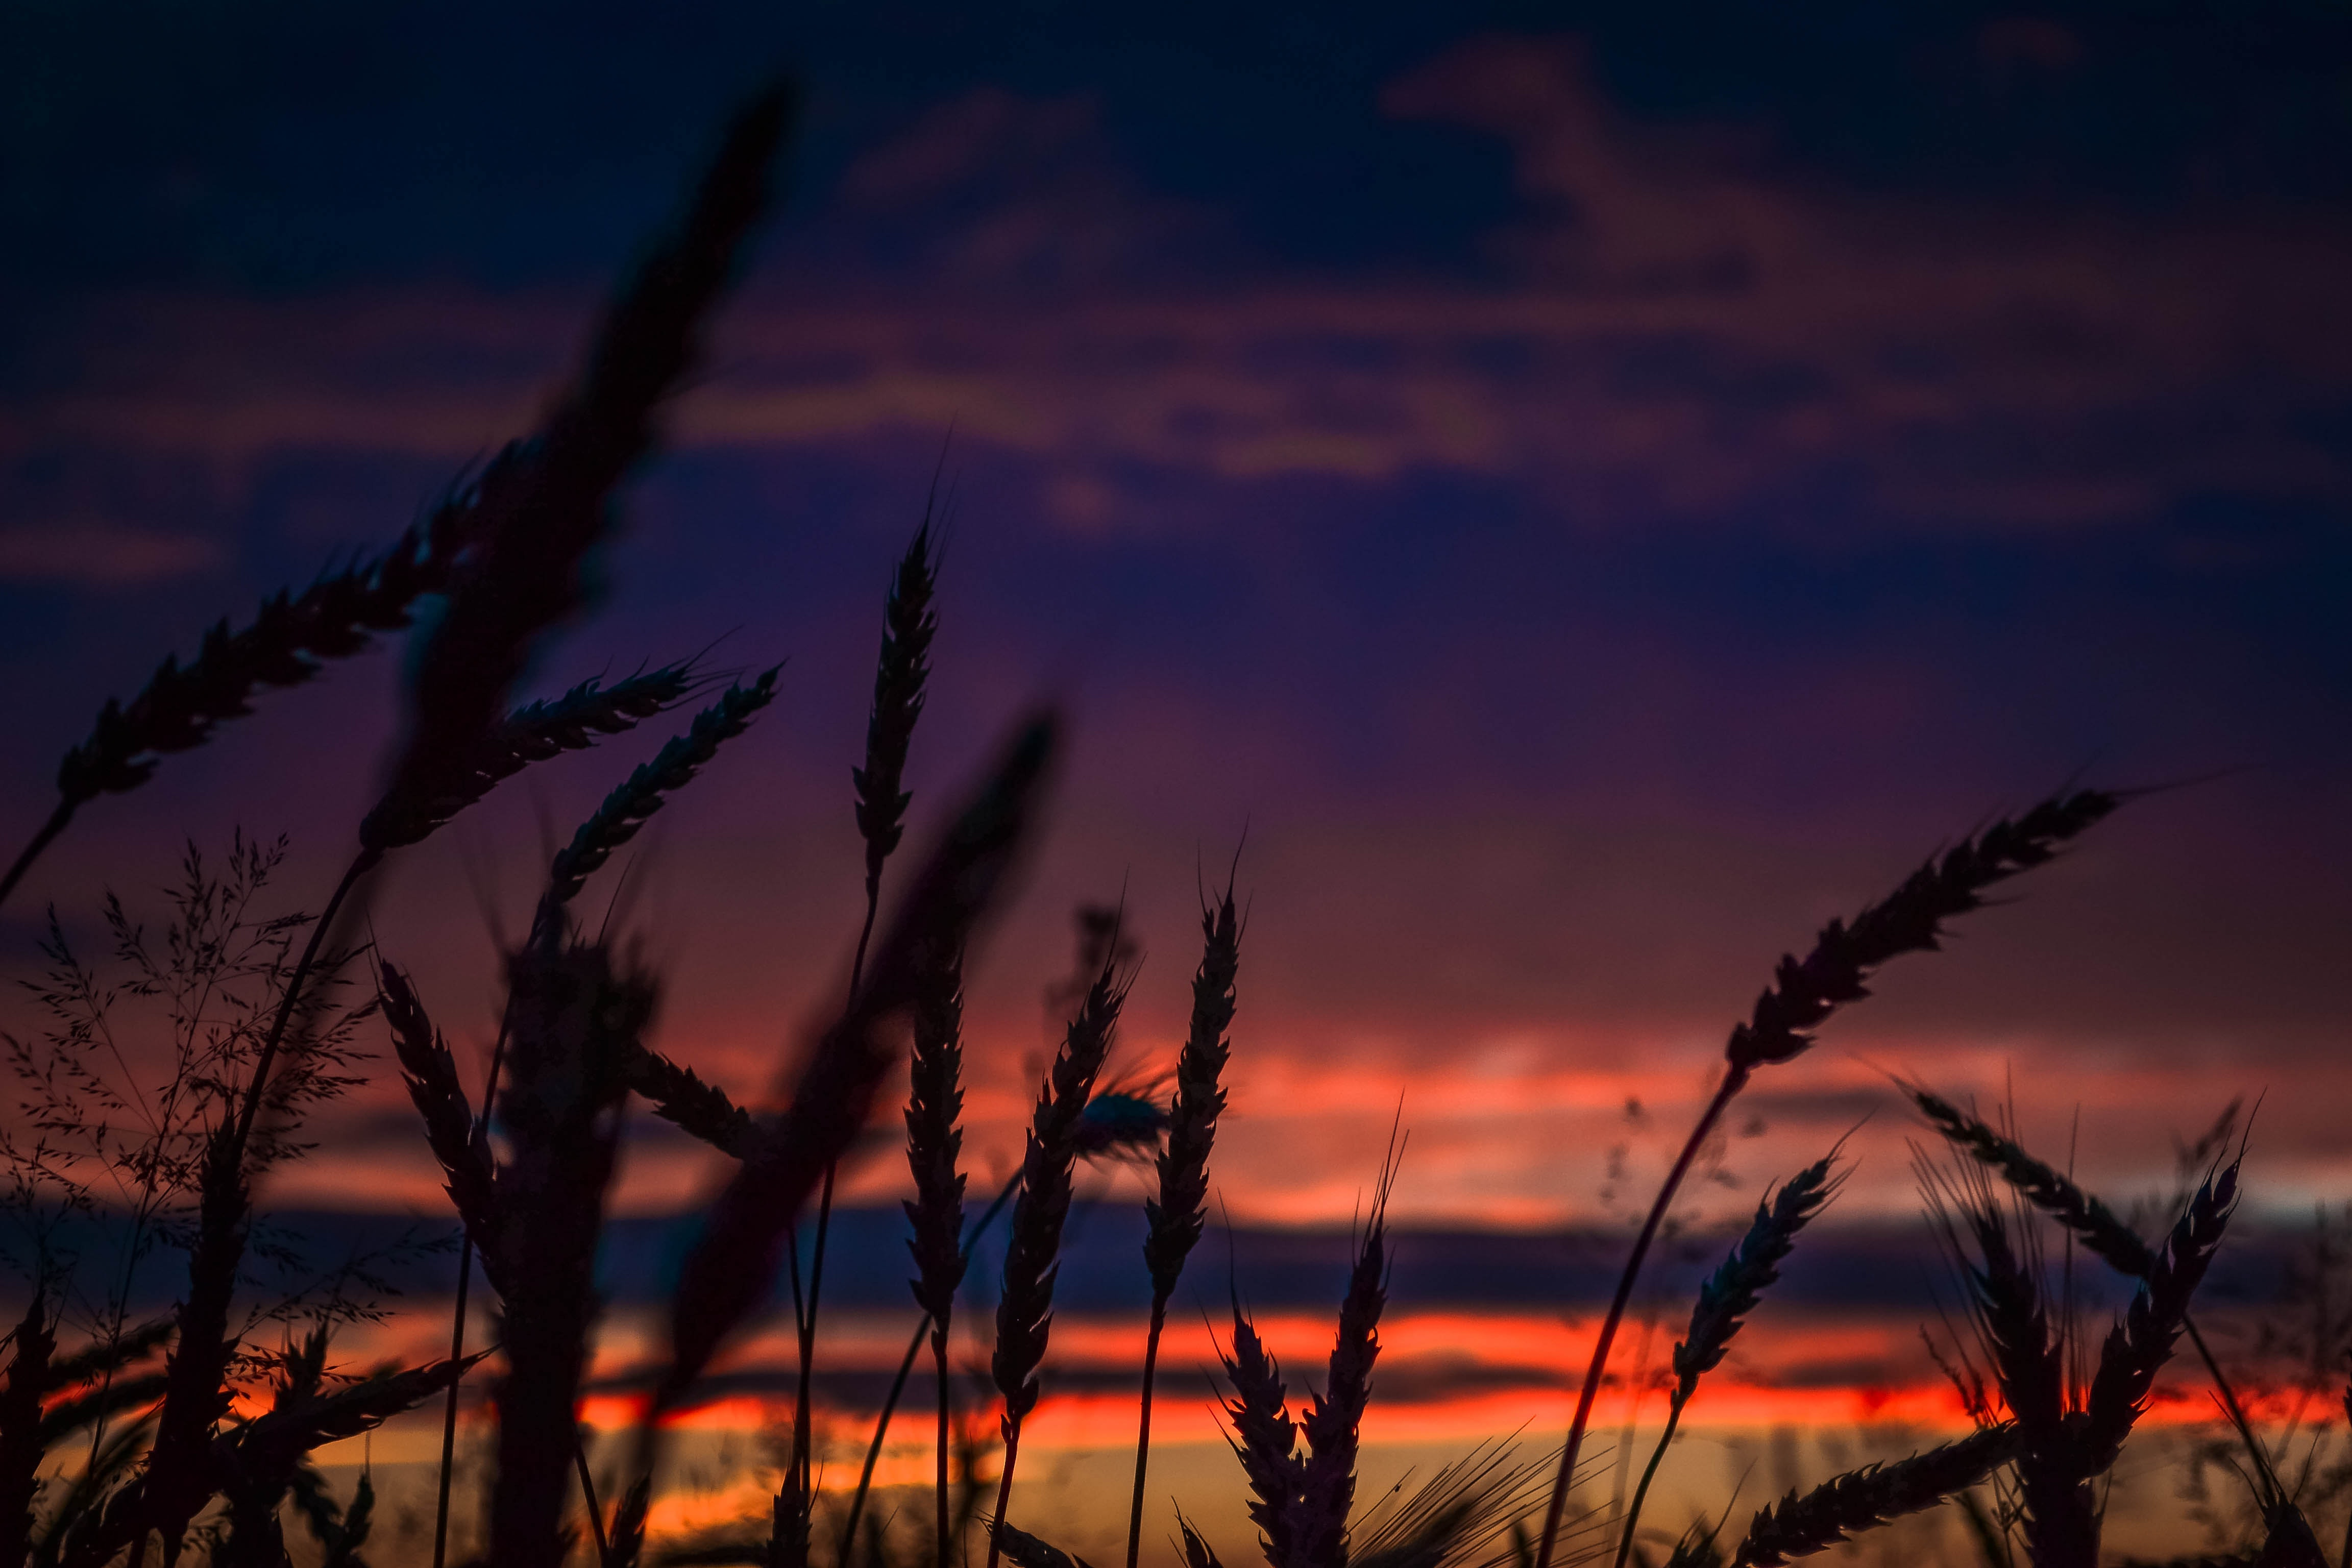 Silhouette of Wheats during Dawn in Landscape Photography, Mother nature, Sunset, Silhouettes, Scenic, HQ Photo